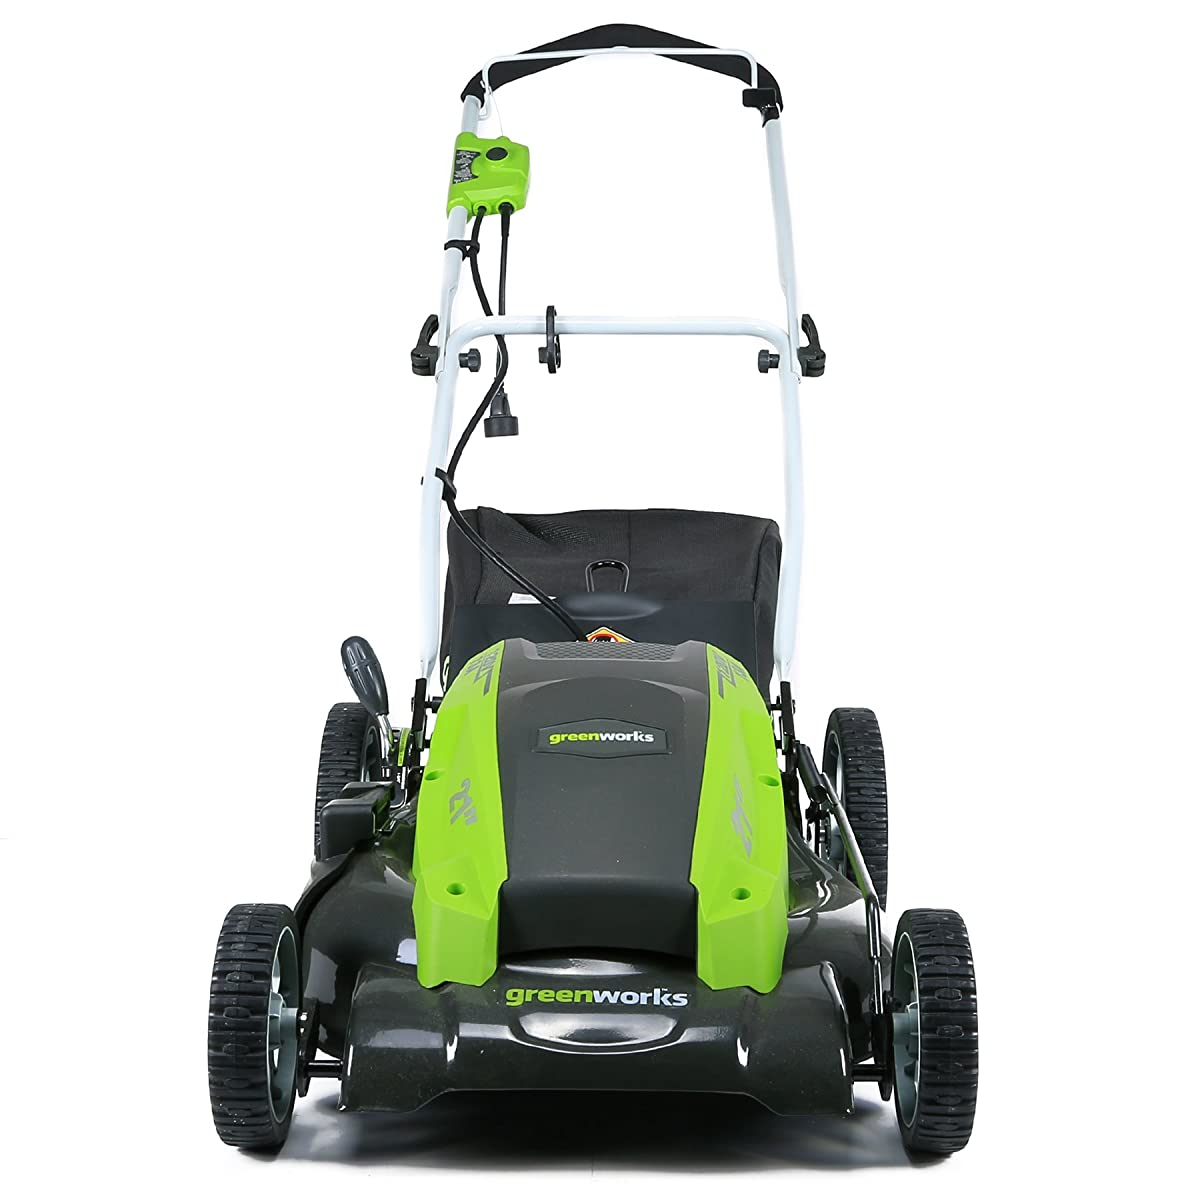 GreenWorks 25112 13 Amp 21-Inch Corded Lawn Mower